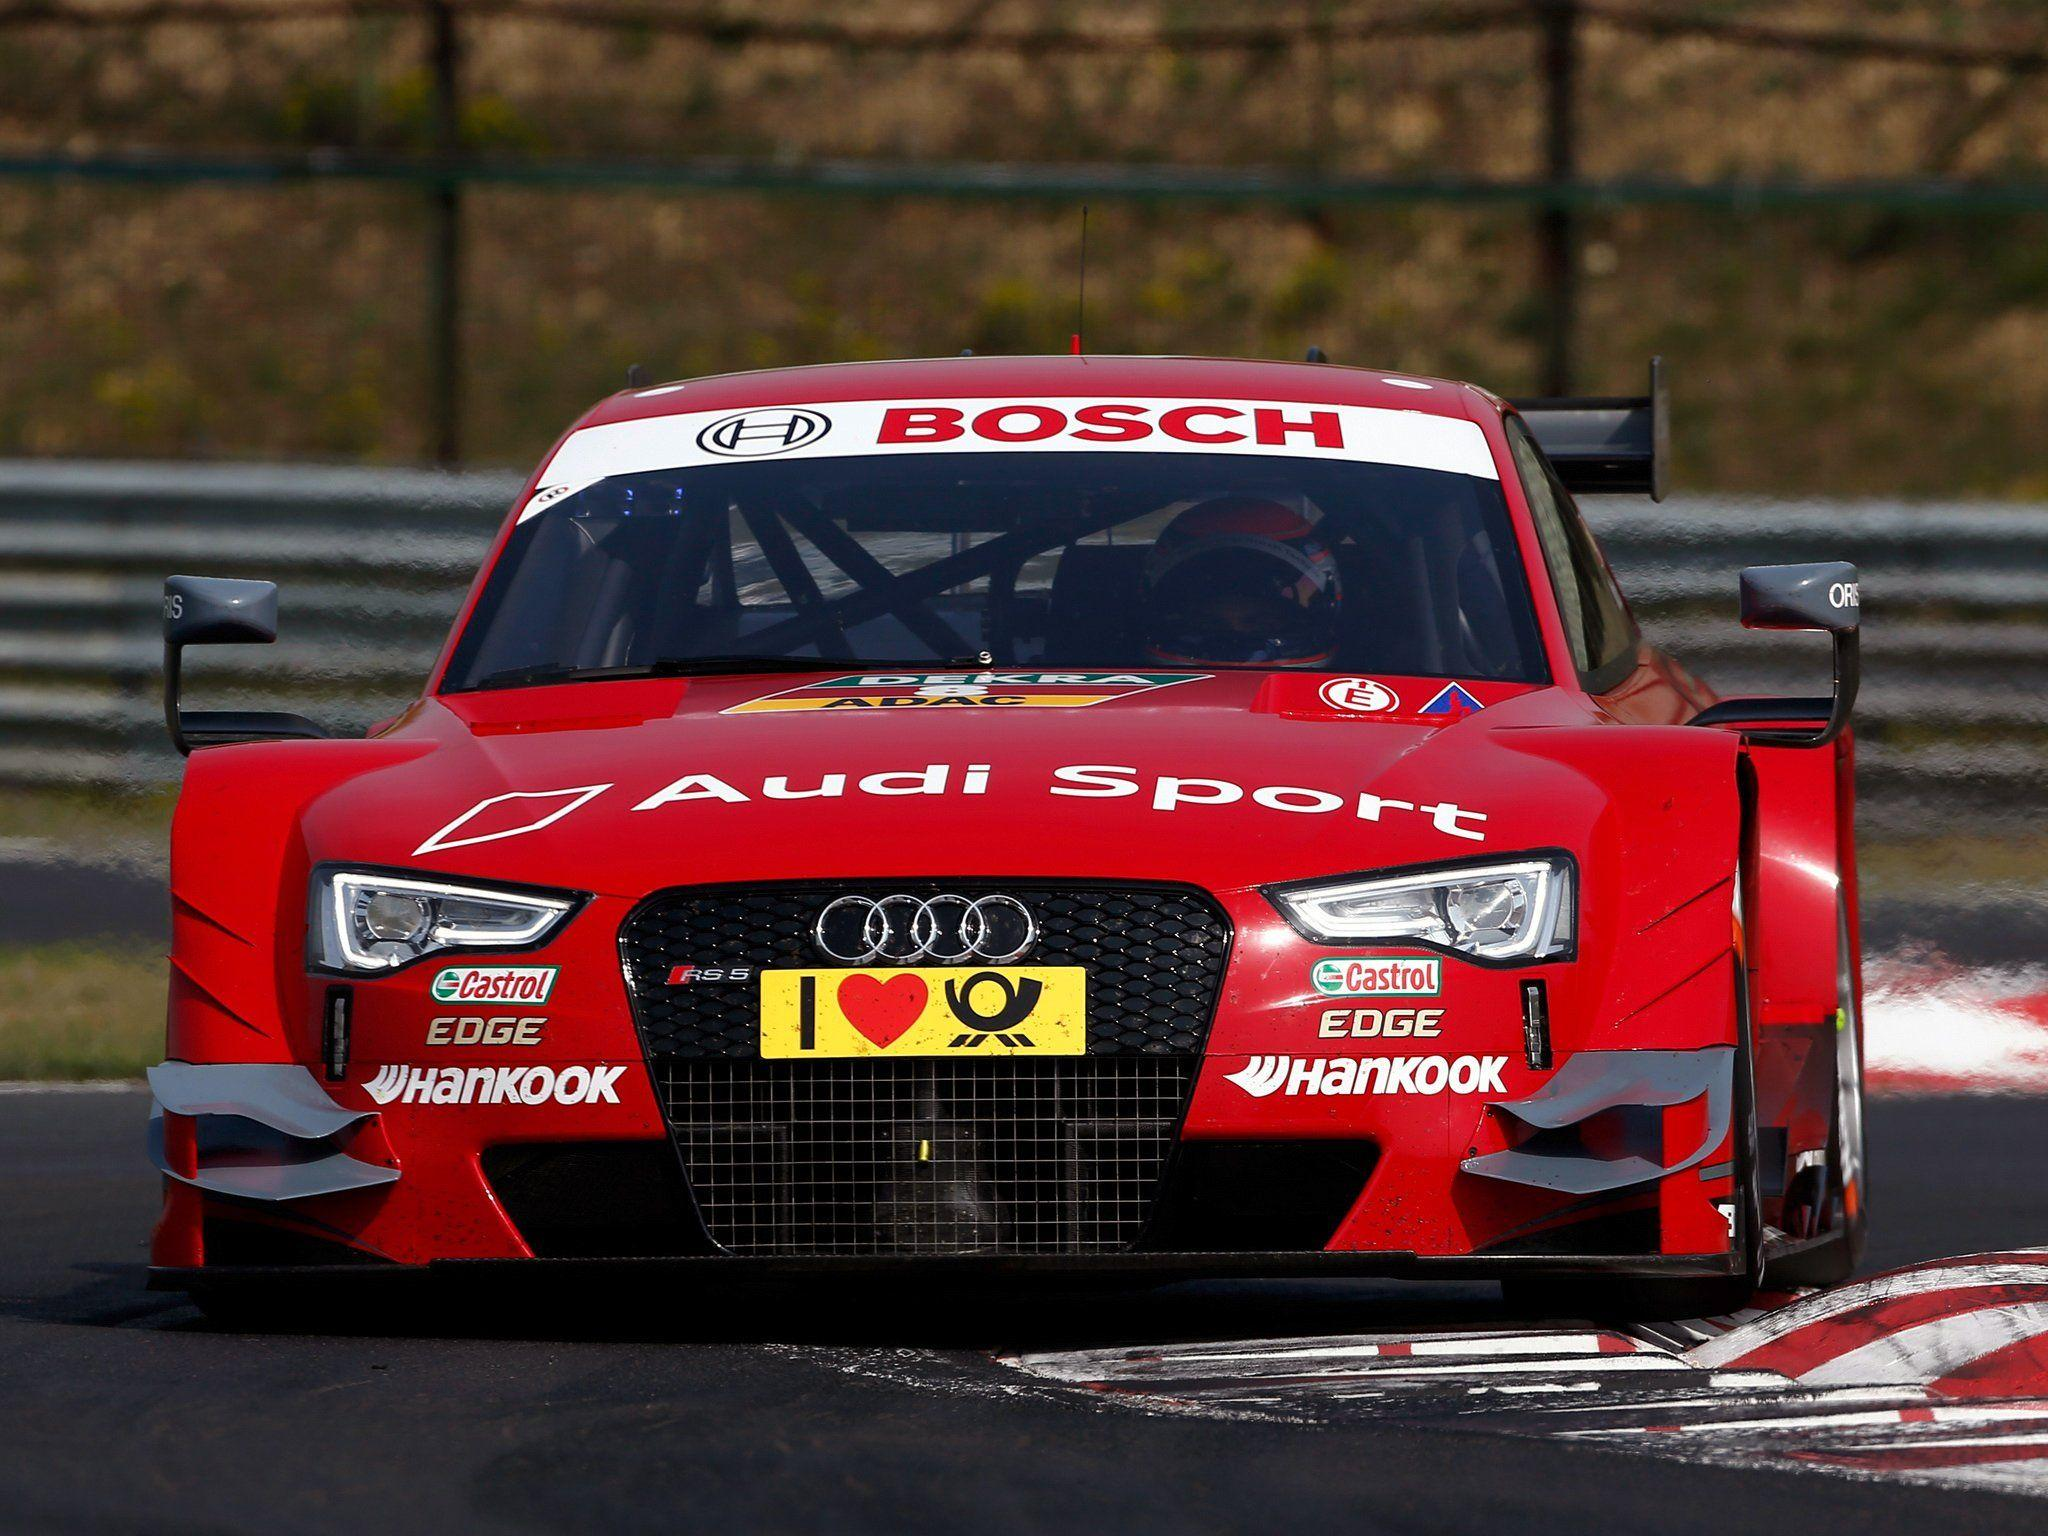 2012 Audi Rs5 Dtm Wallpaper 11828 - illinois-liver | Android ...